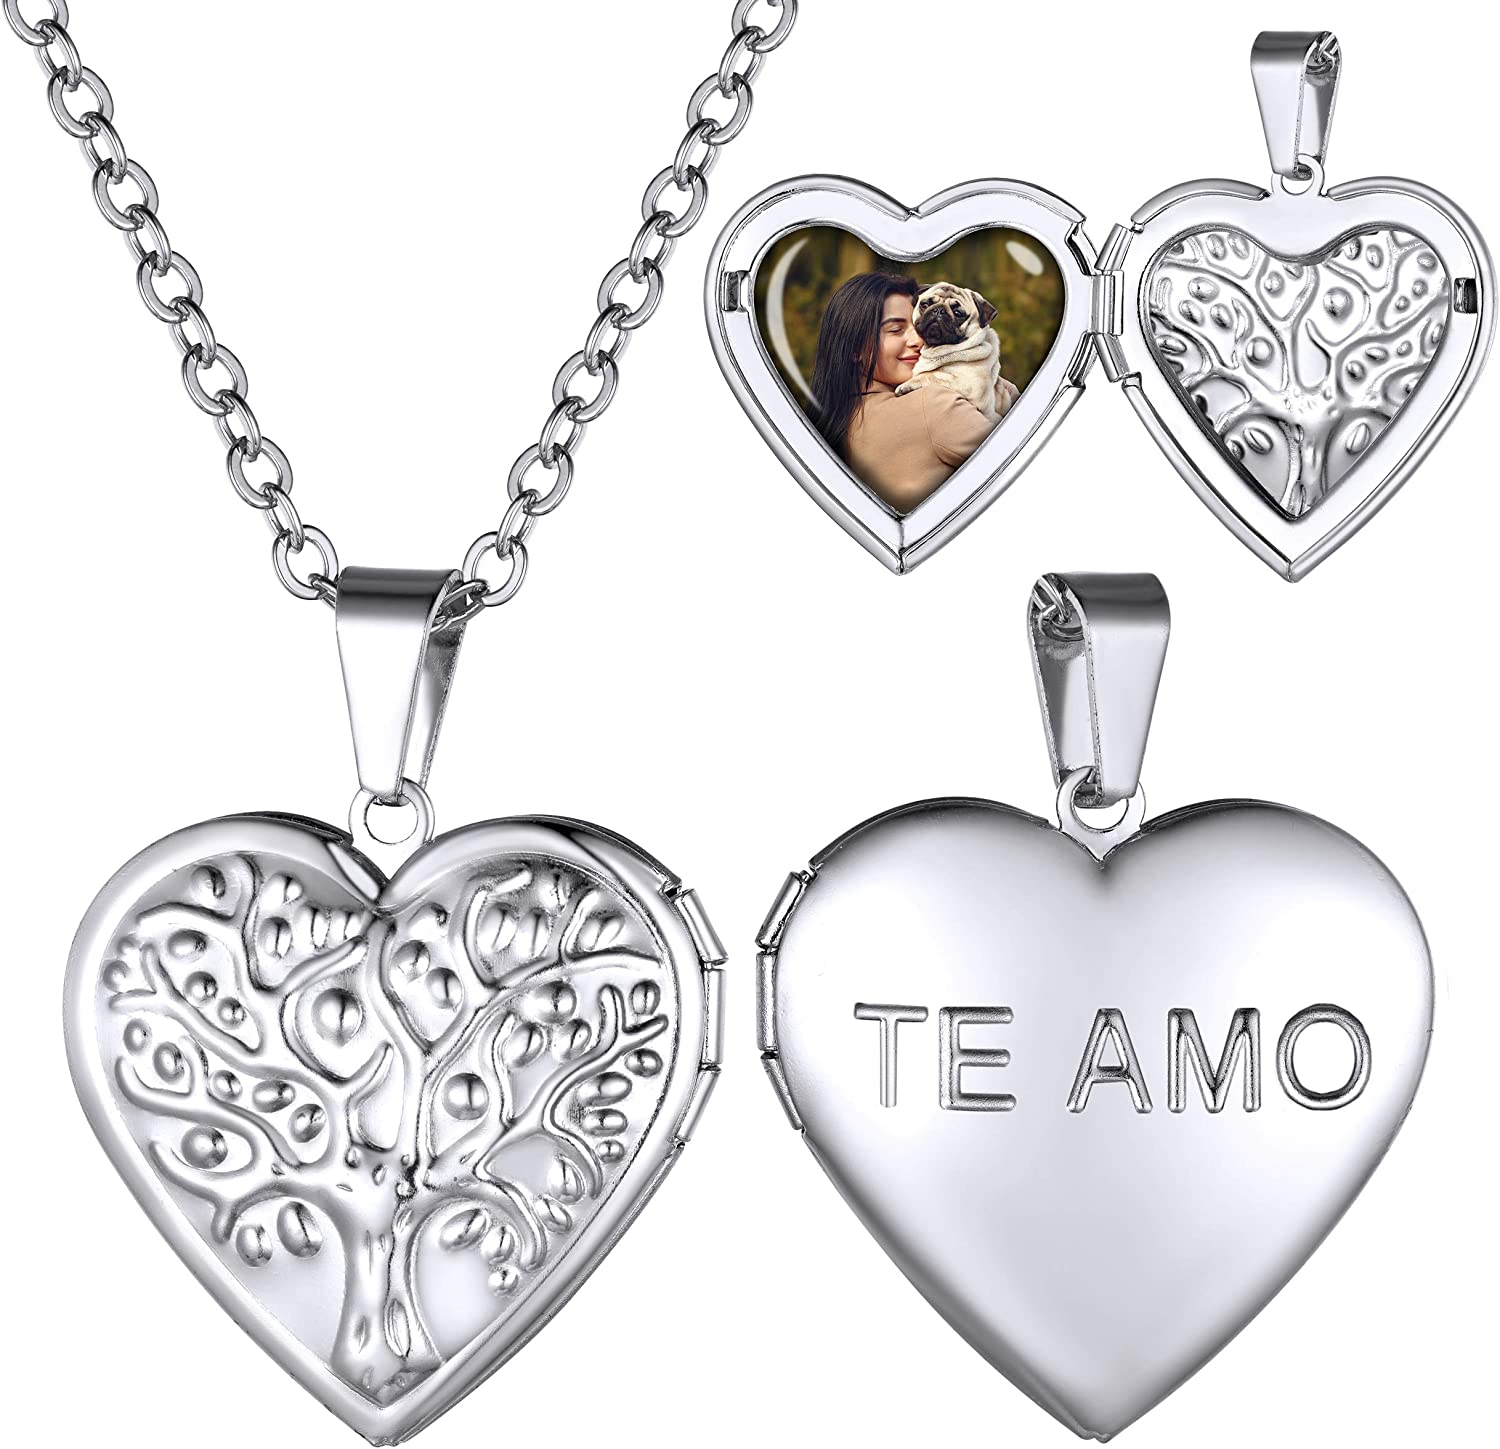 GOLDCHIC JEWELRY Heart Locket Necklace OFFicial mail order 18K Platinum Gold Plated Sales